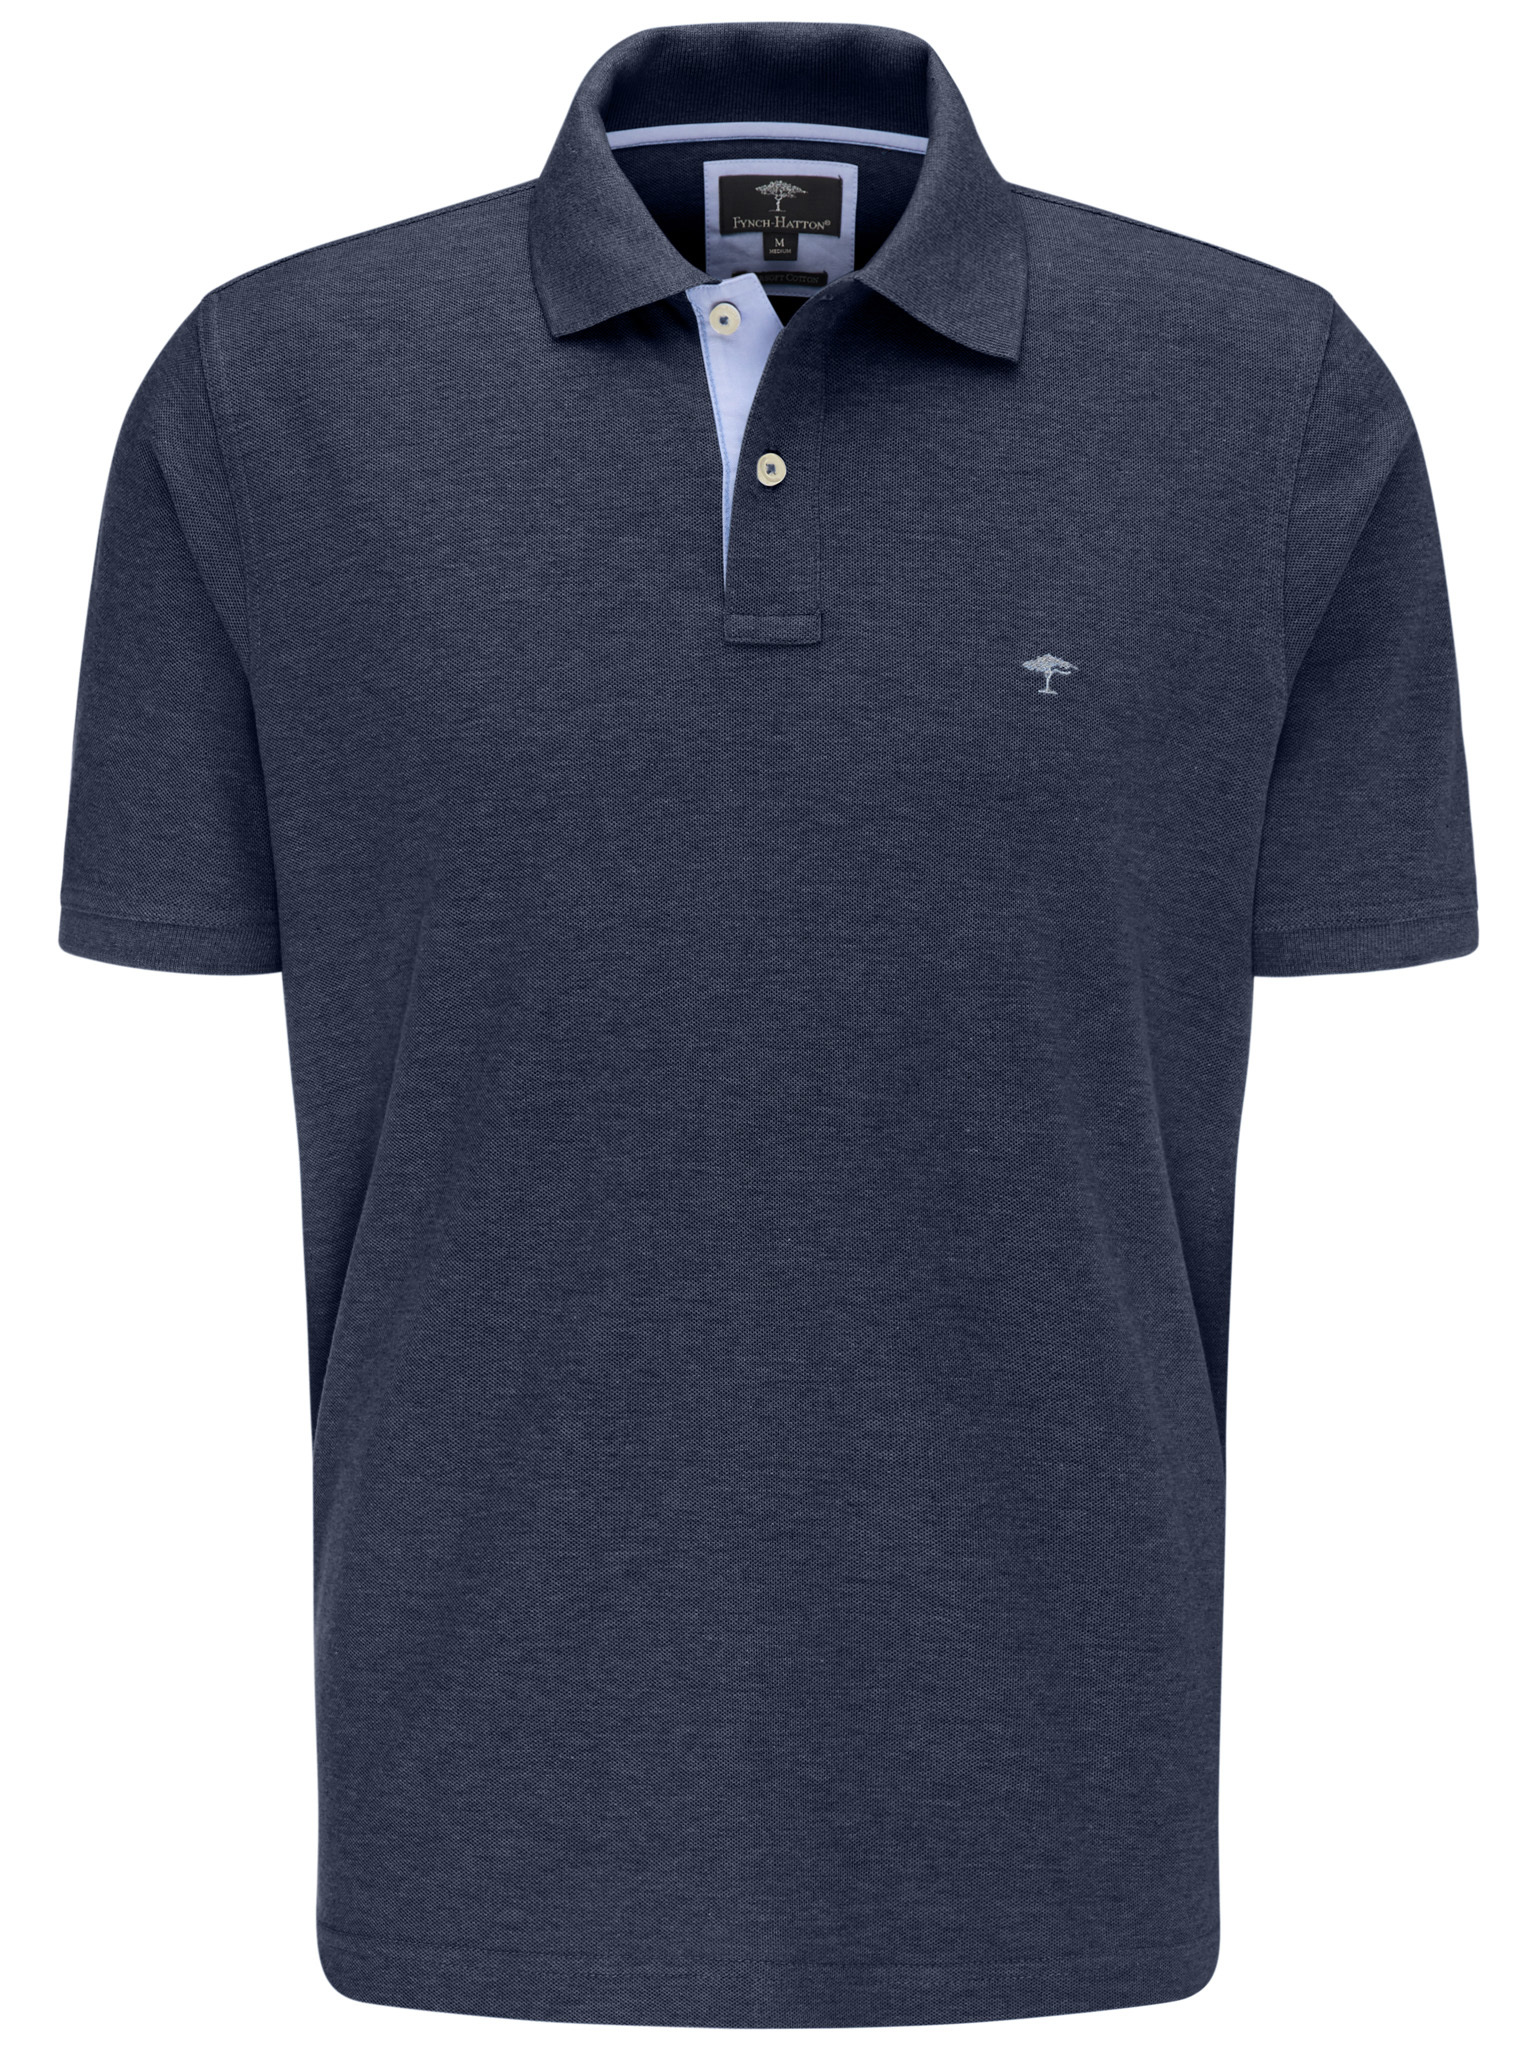 Fynch Hatton cotton polo in navy blue